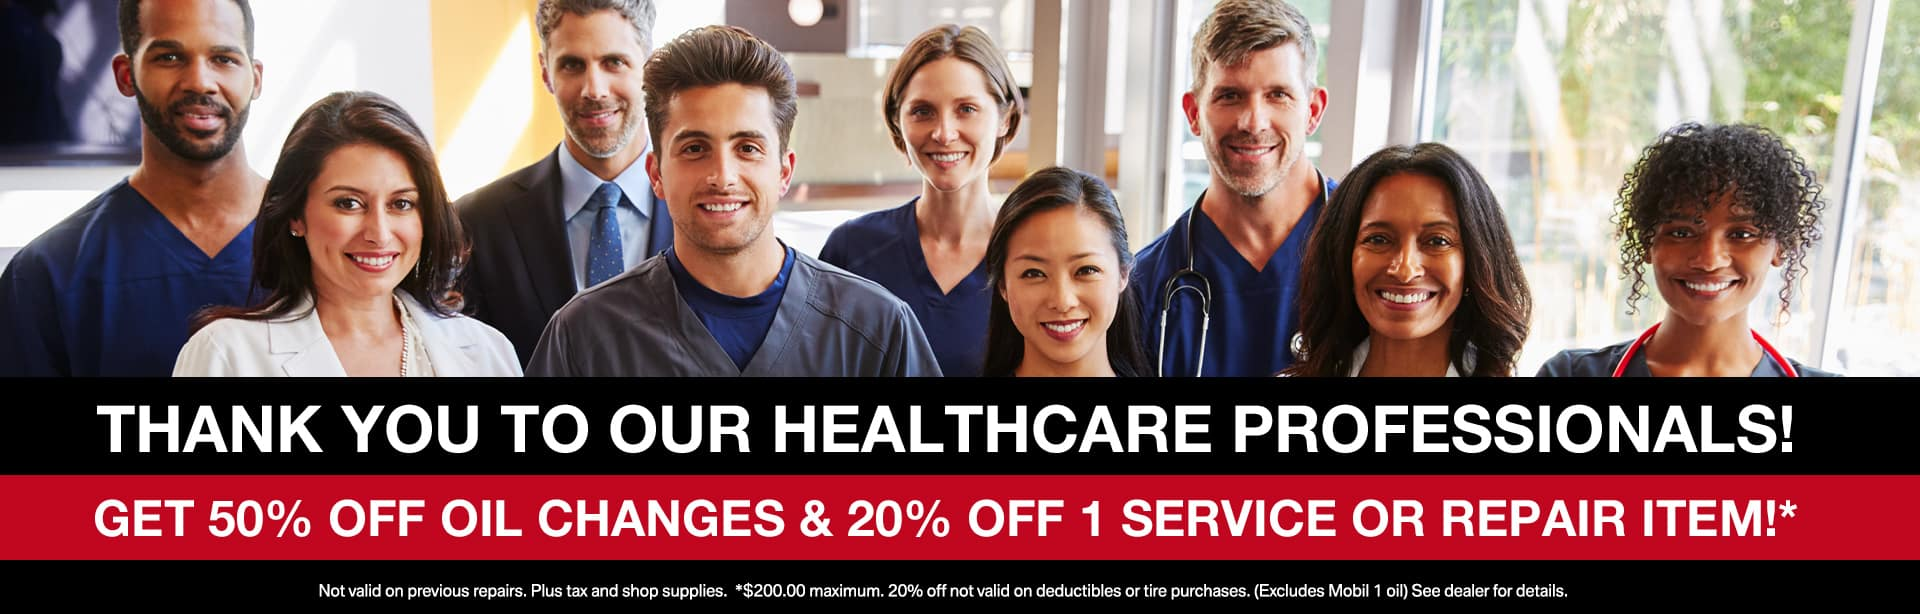 Thank You To Our Healthcare Professionals! Get 50% Off Oil Changes & 25% Off 1 Service Or Repair Item